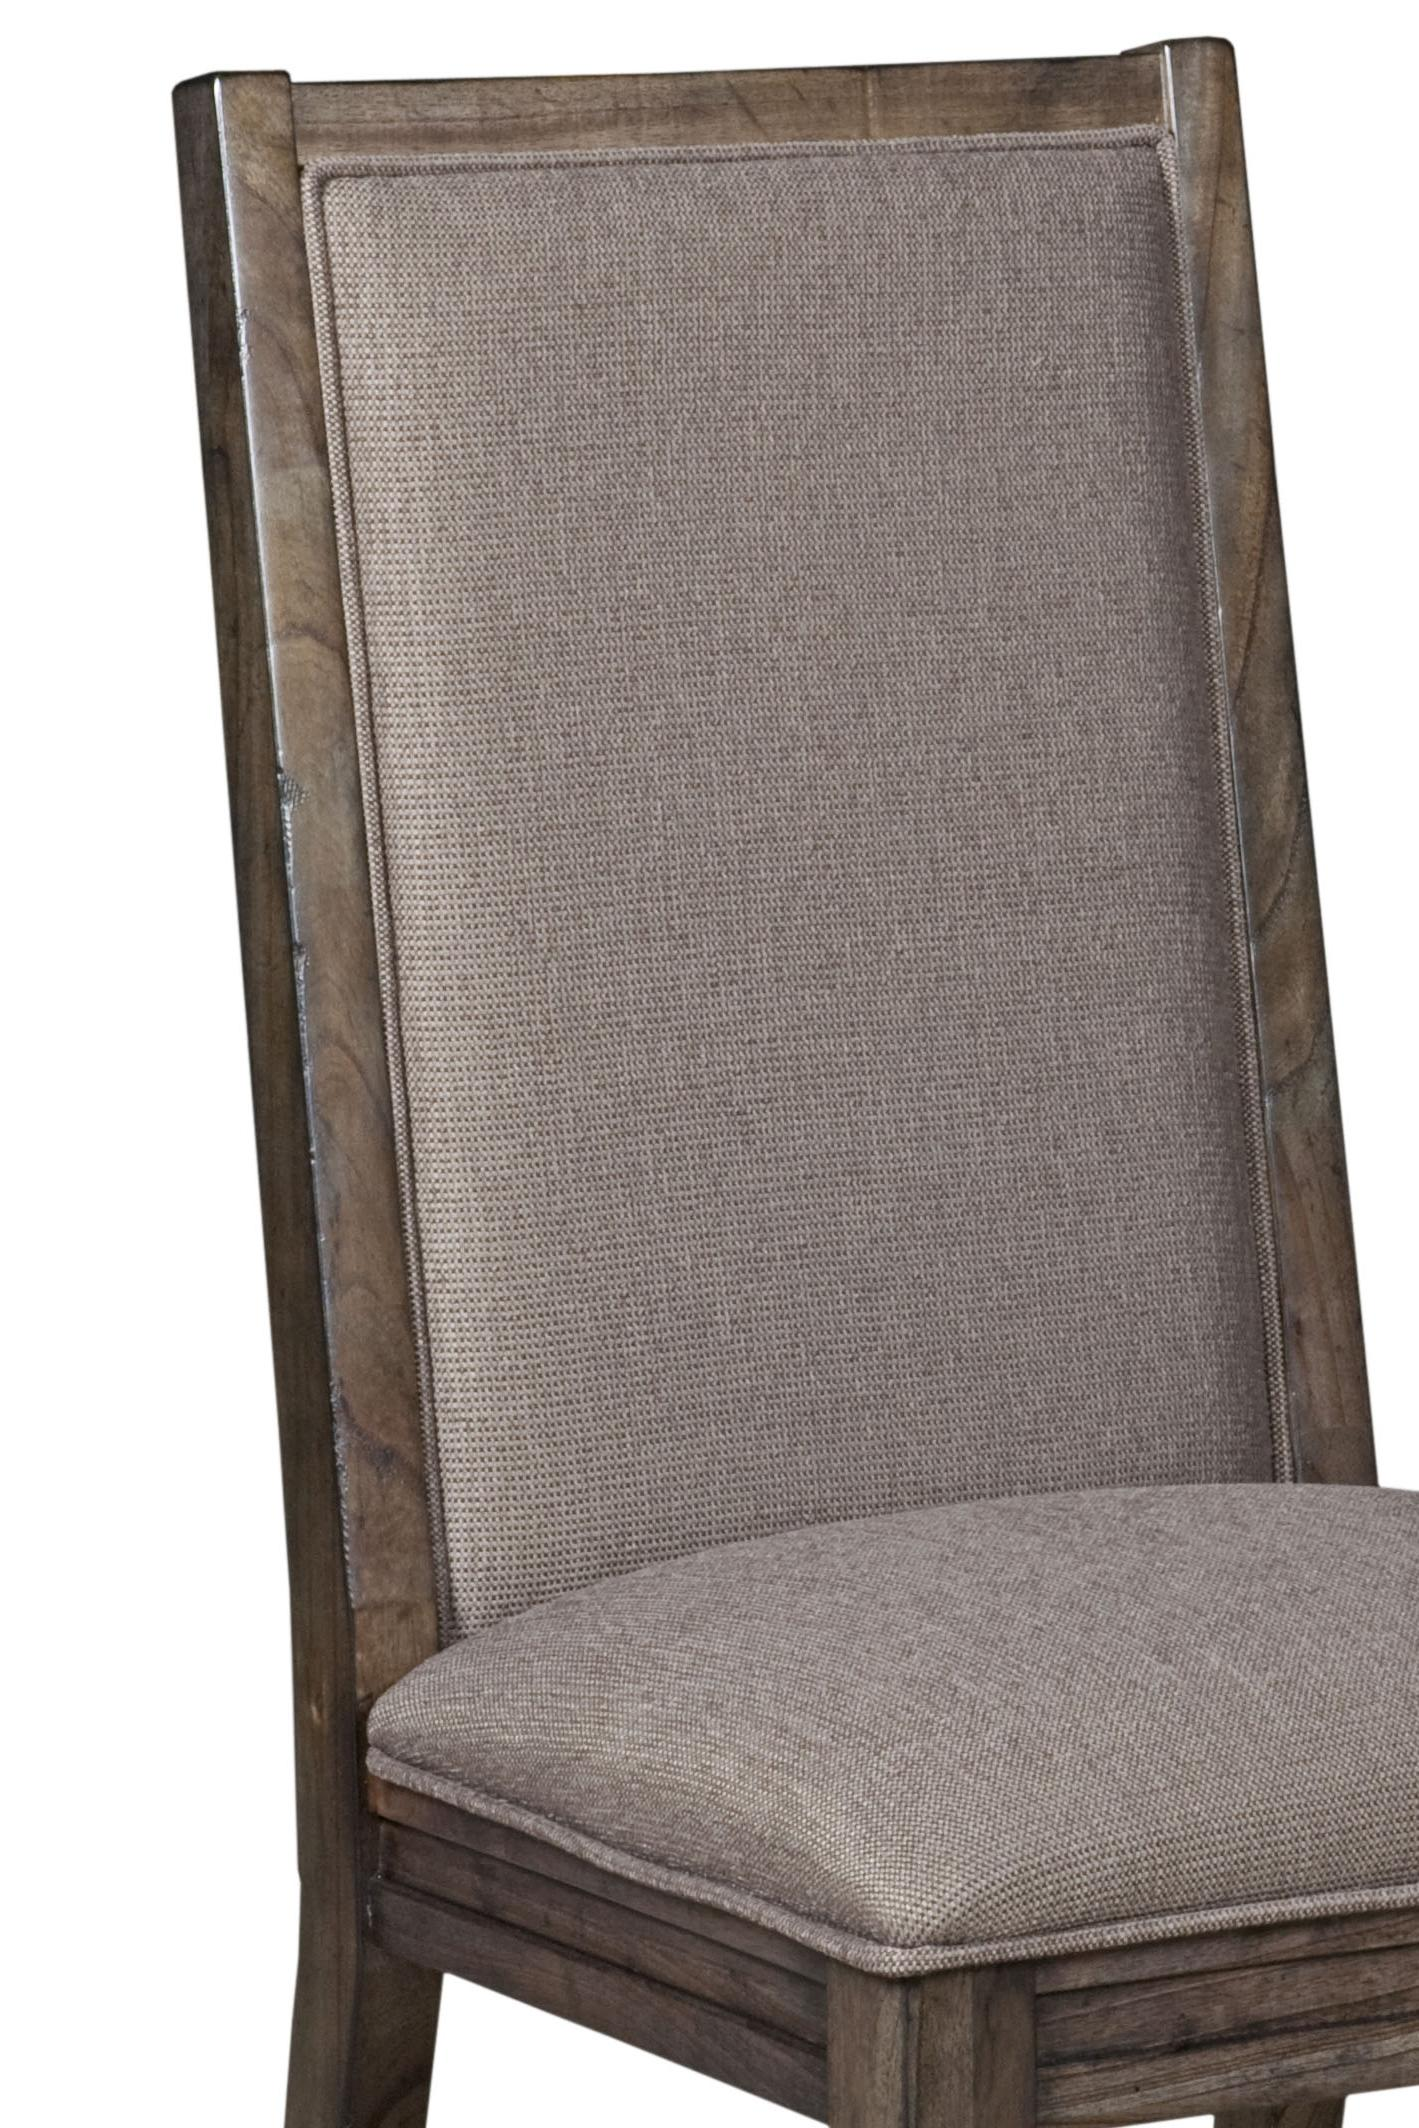 Exceptional Montreat (84) By Kincaid Furniture   Belfort Furniture   Kincaid Furniture  Montreat Dealer